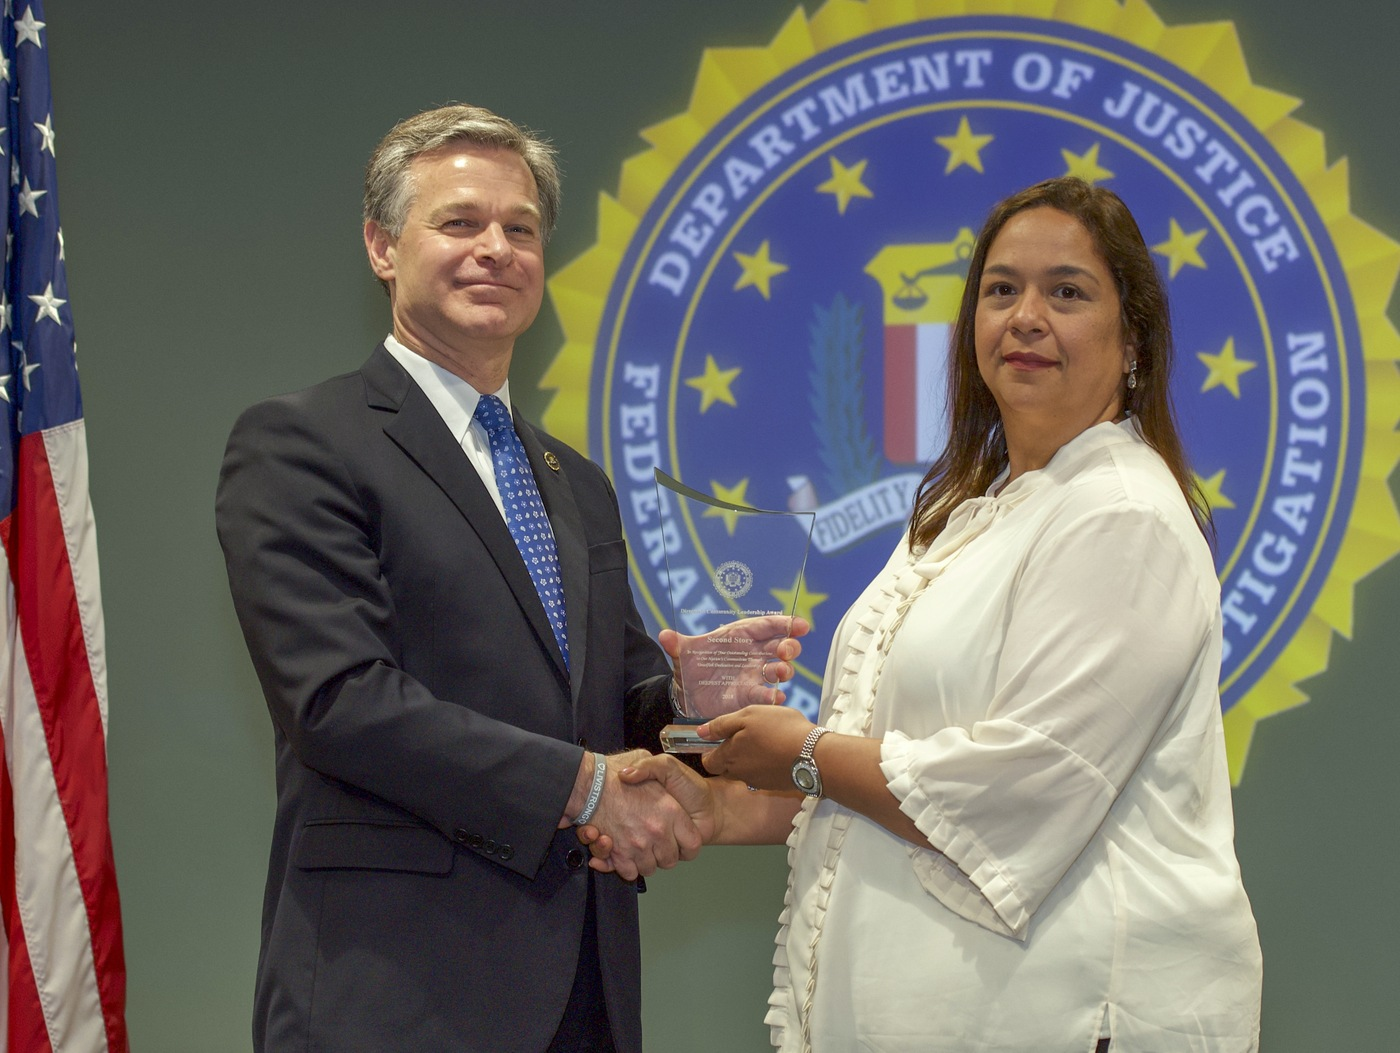 FBI Director Christopher Wray presents Washington Field Office Division recipient Second Story (represented by Nandred Navarro) with the Director's Community Leadership Award (DCLA) at a ceremony at FBI Headquarters on May 3, 2019.